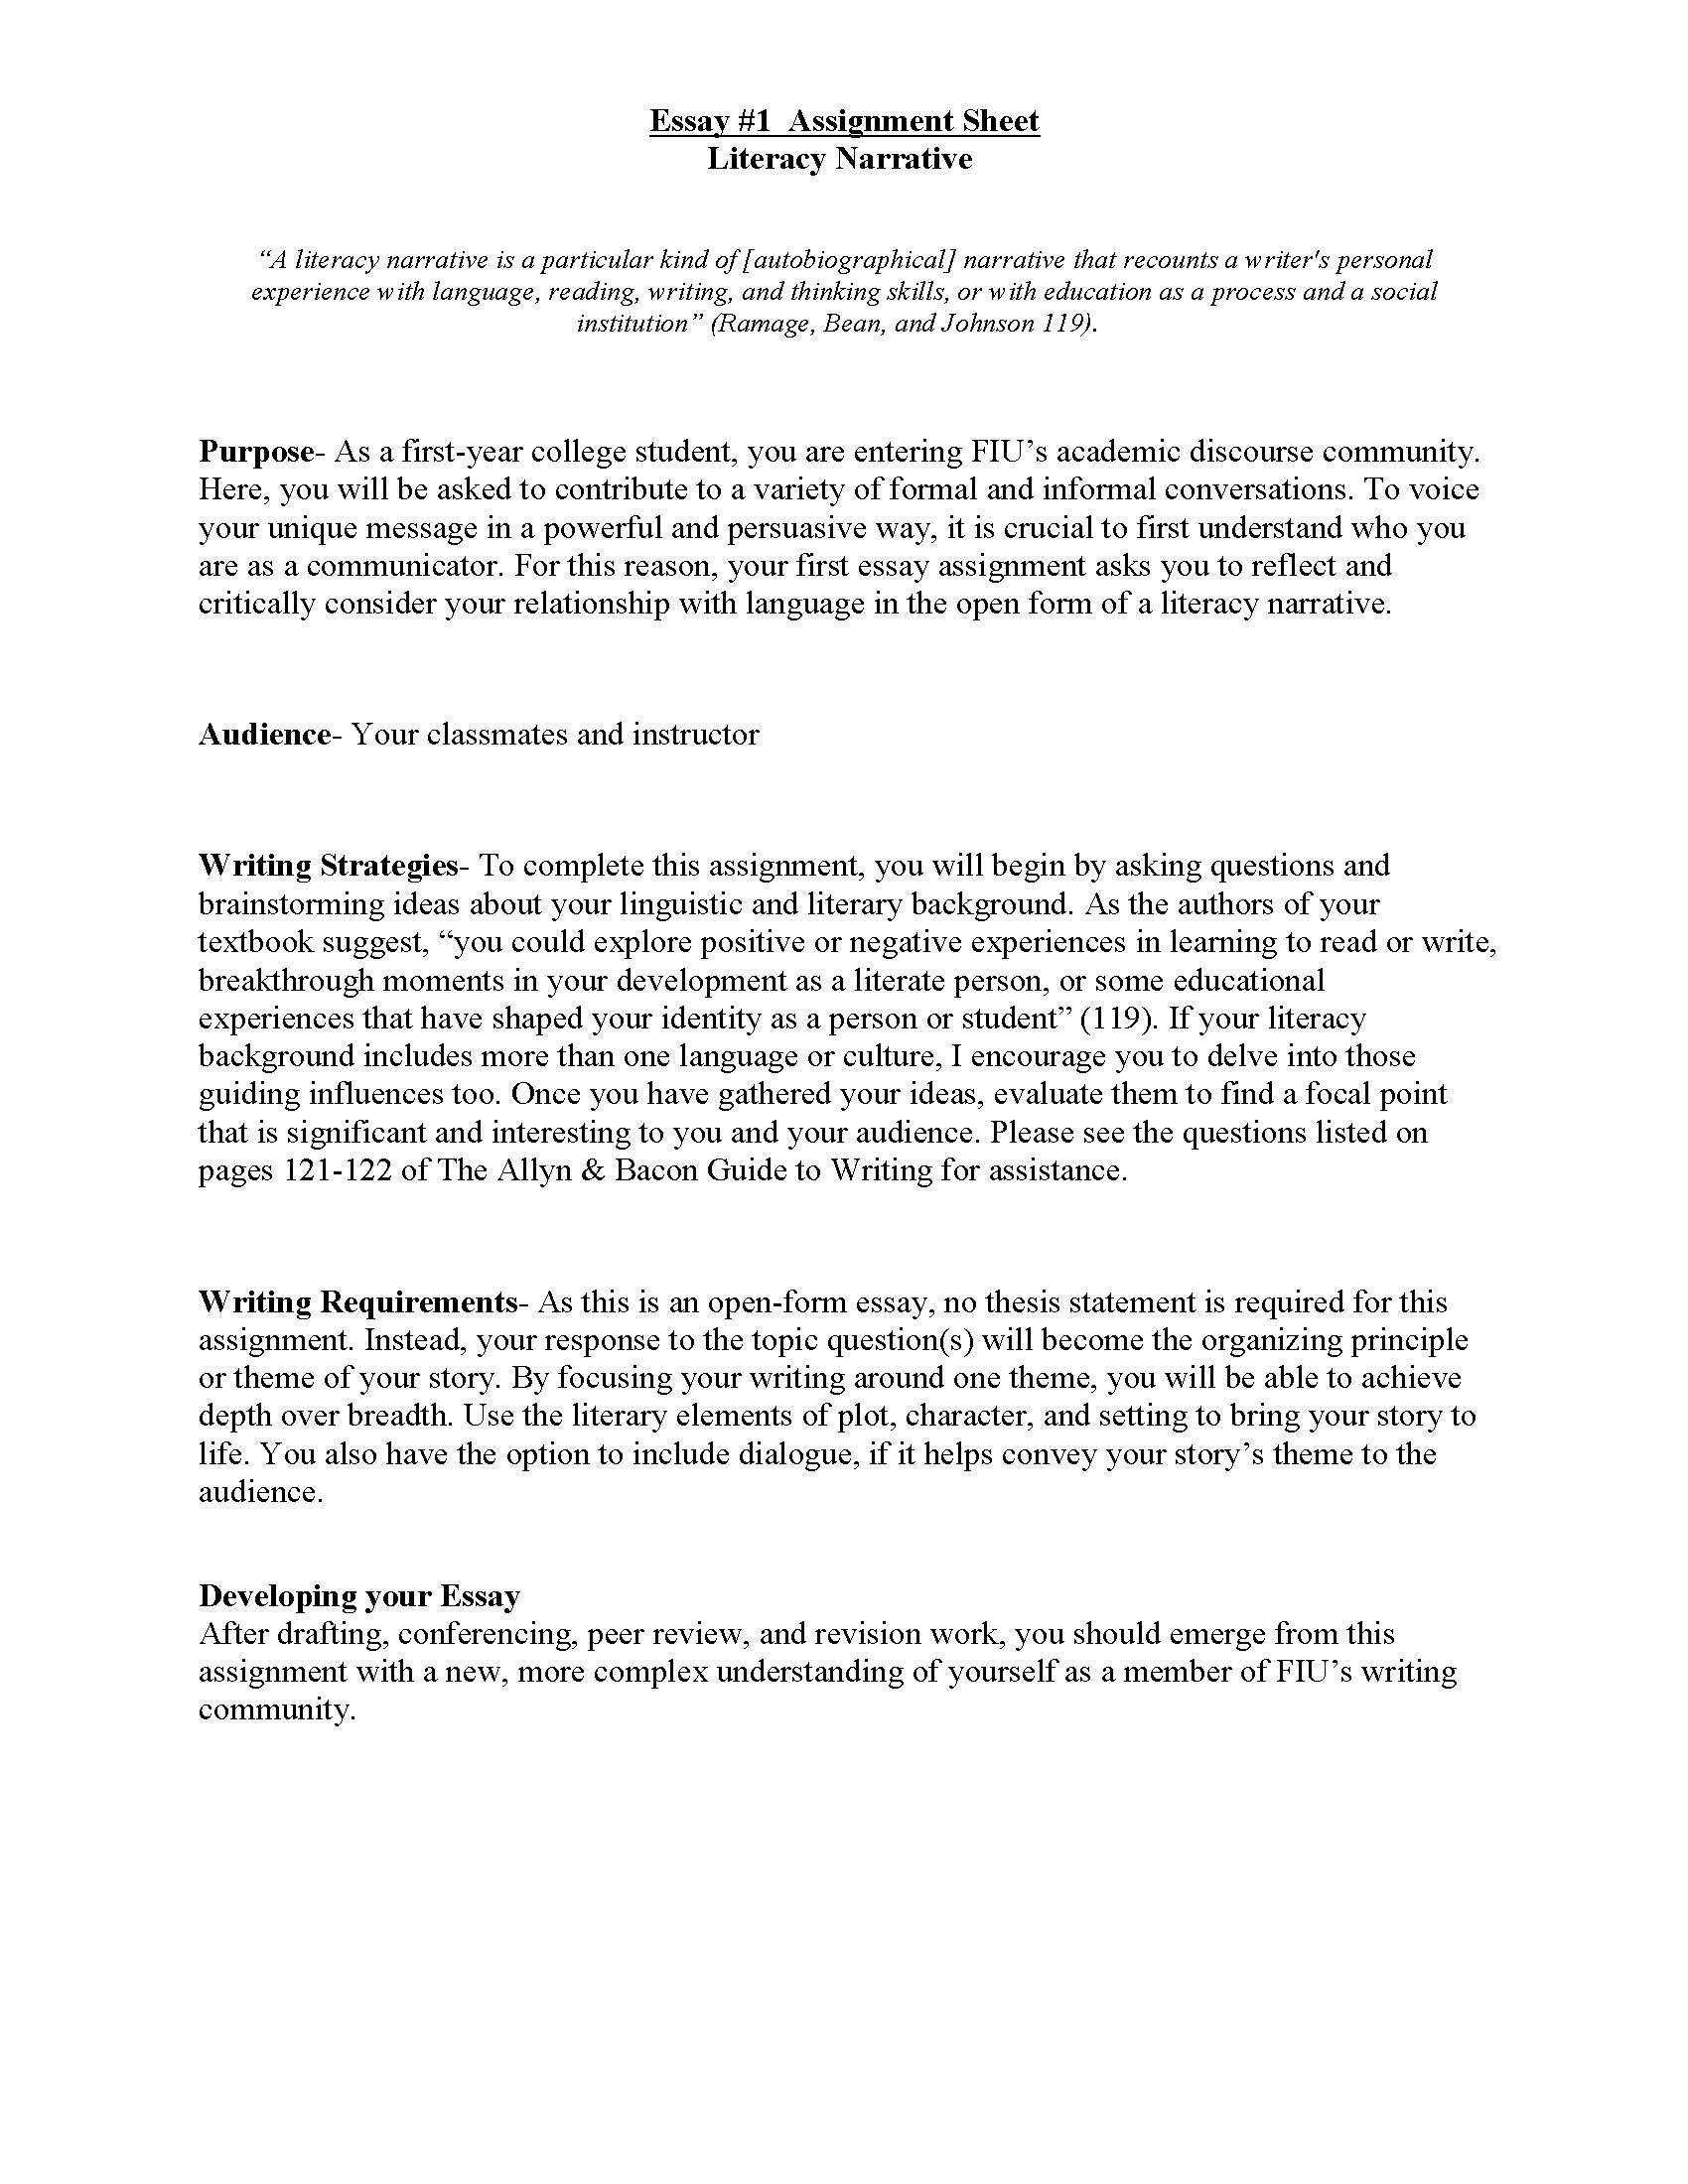 020 Literacy Narrative Unit Assignment Spring 2012 Page 1 Essay Example Fearsome Essays About Family Topics For O Levels Personal Traveling Full